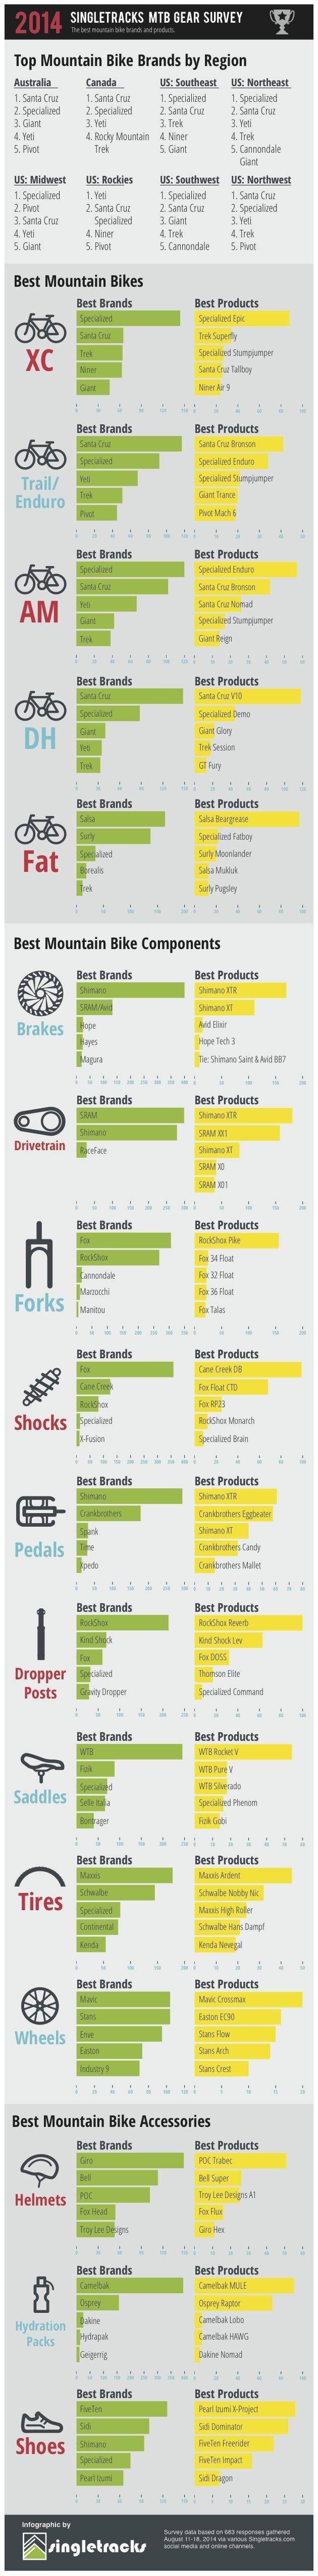 The Best Mountain Bike Brands and Products of 2014 Visit us @ http://www.wocycling.com/ for the best online cycling store.: